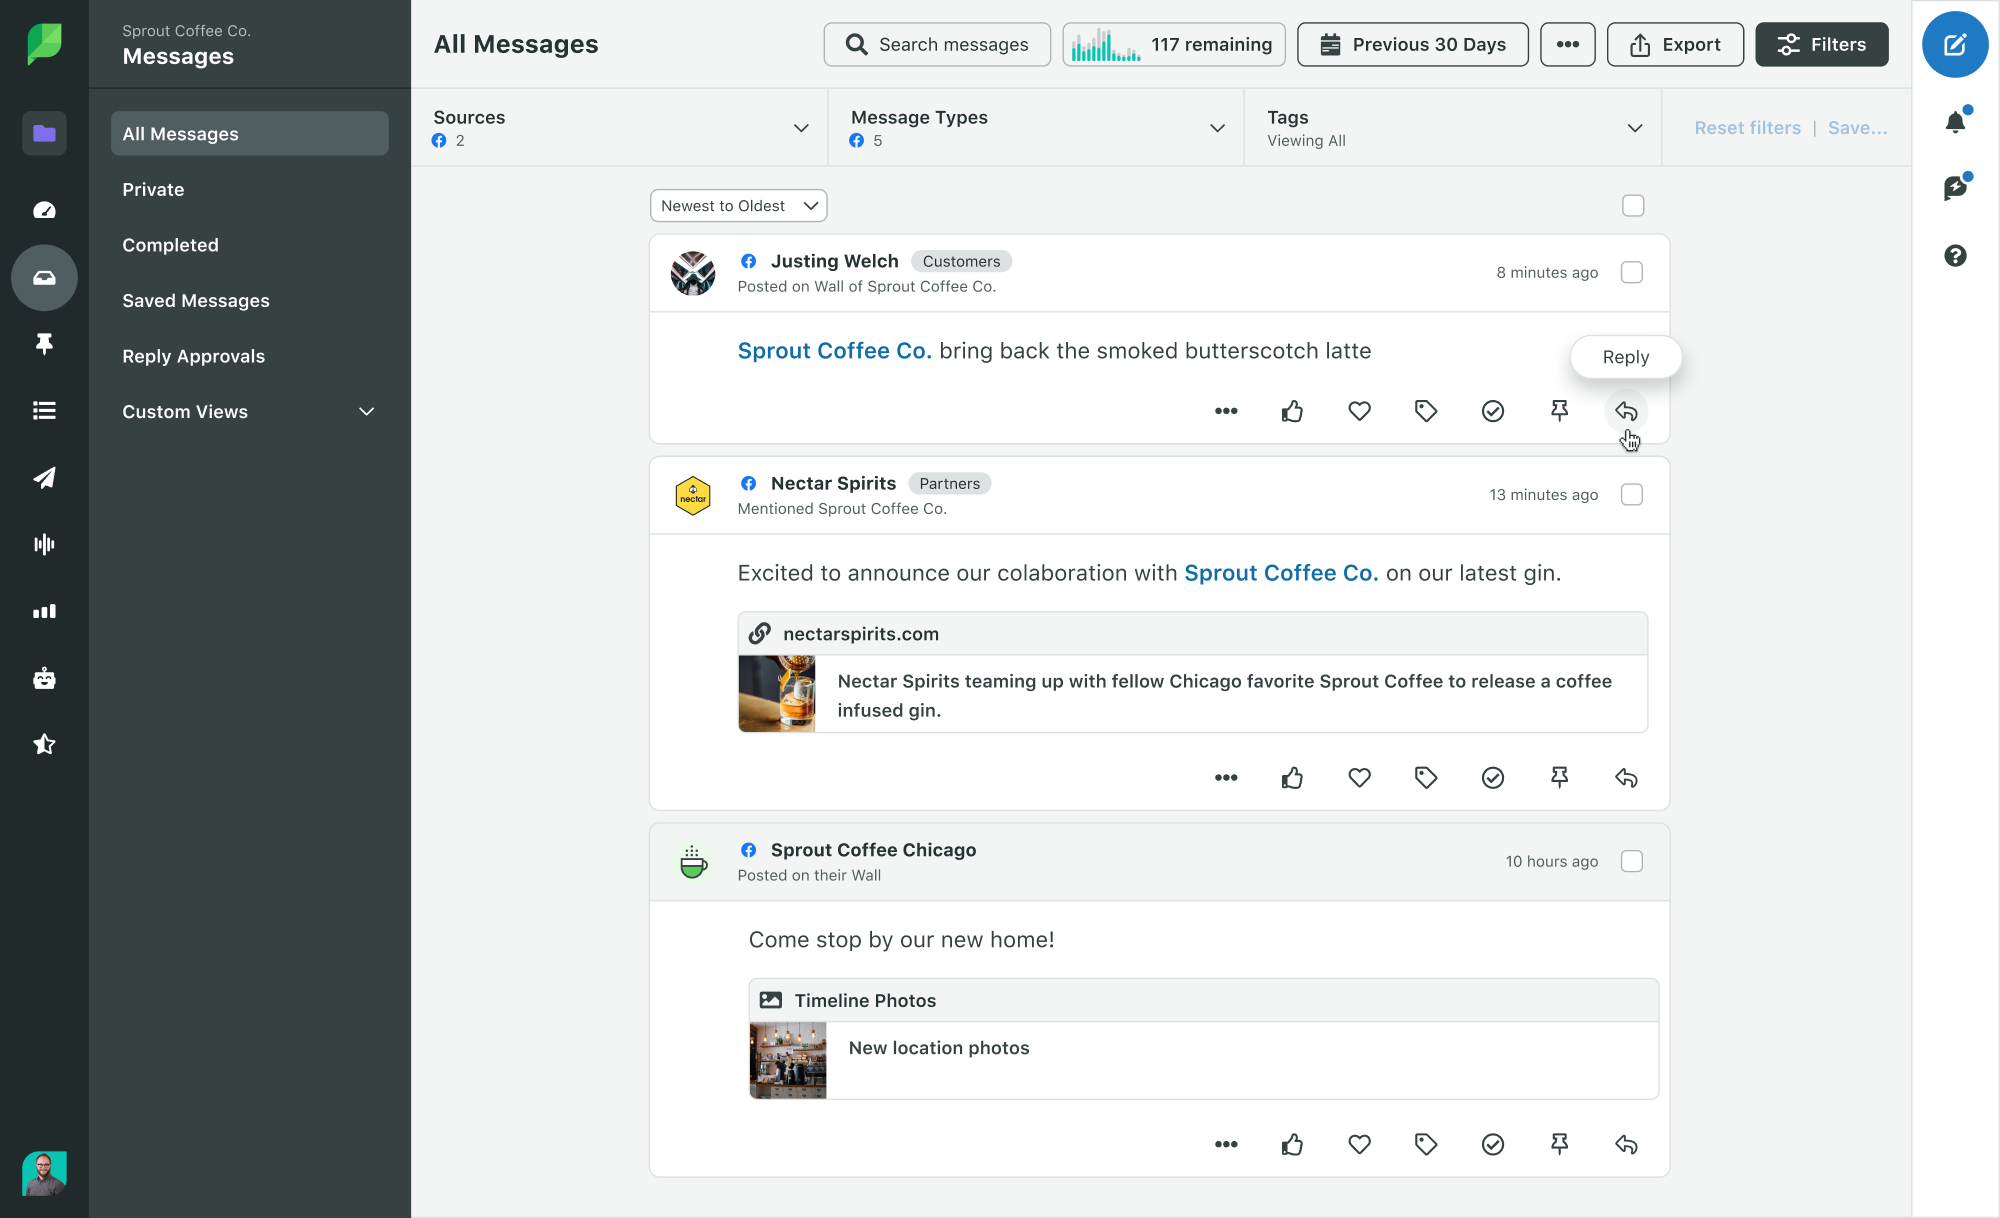 Use Sprout Social's Smart Inbox to reply to followers, brand mentions, and brand community members.